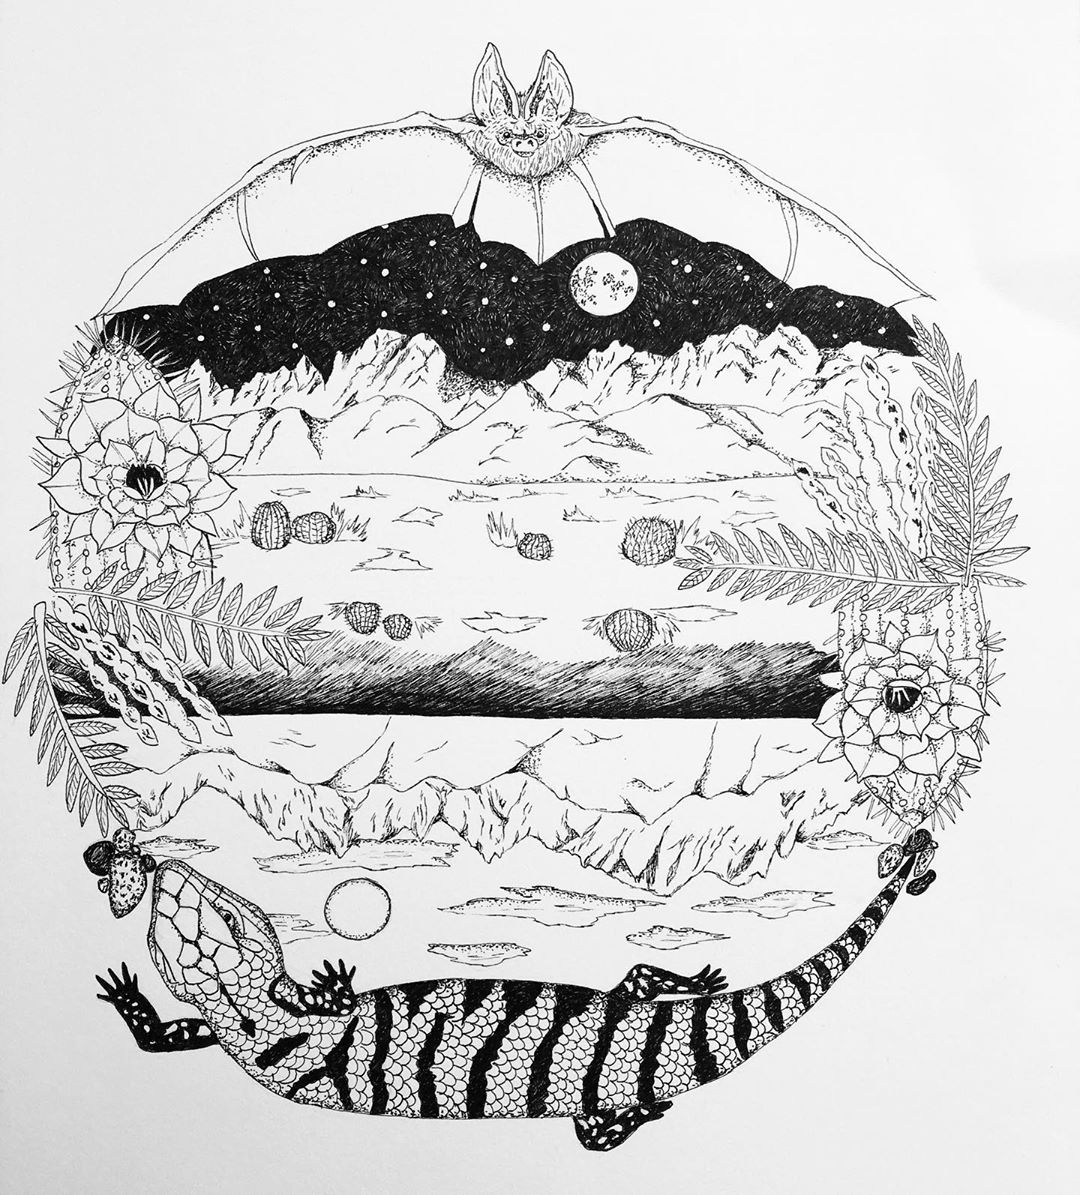 Circular print image of a black and white sketch with a lizard in the bottom and various elements depicting the desert in an art piece